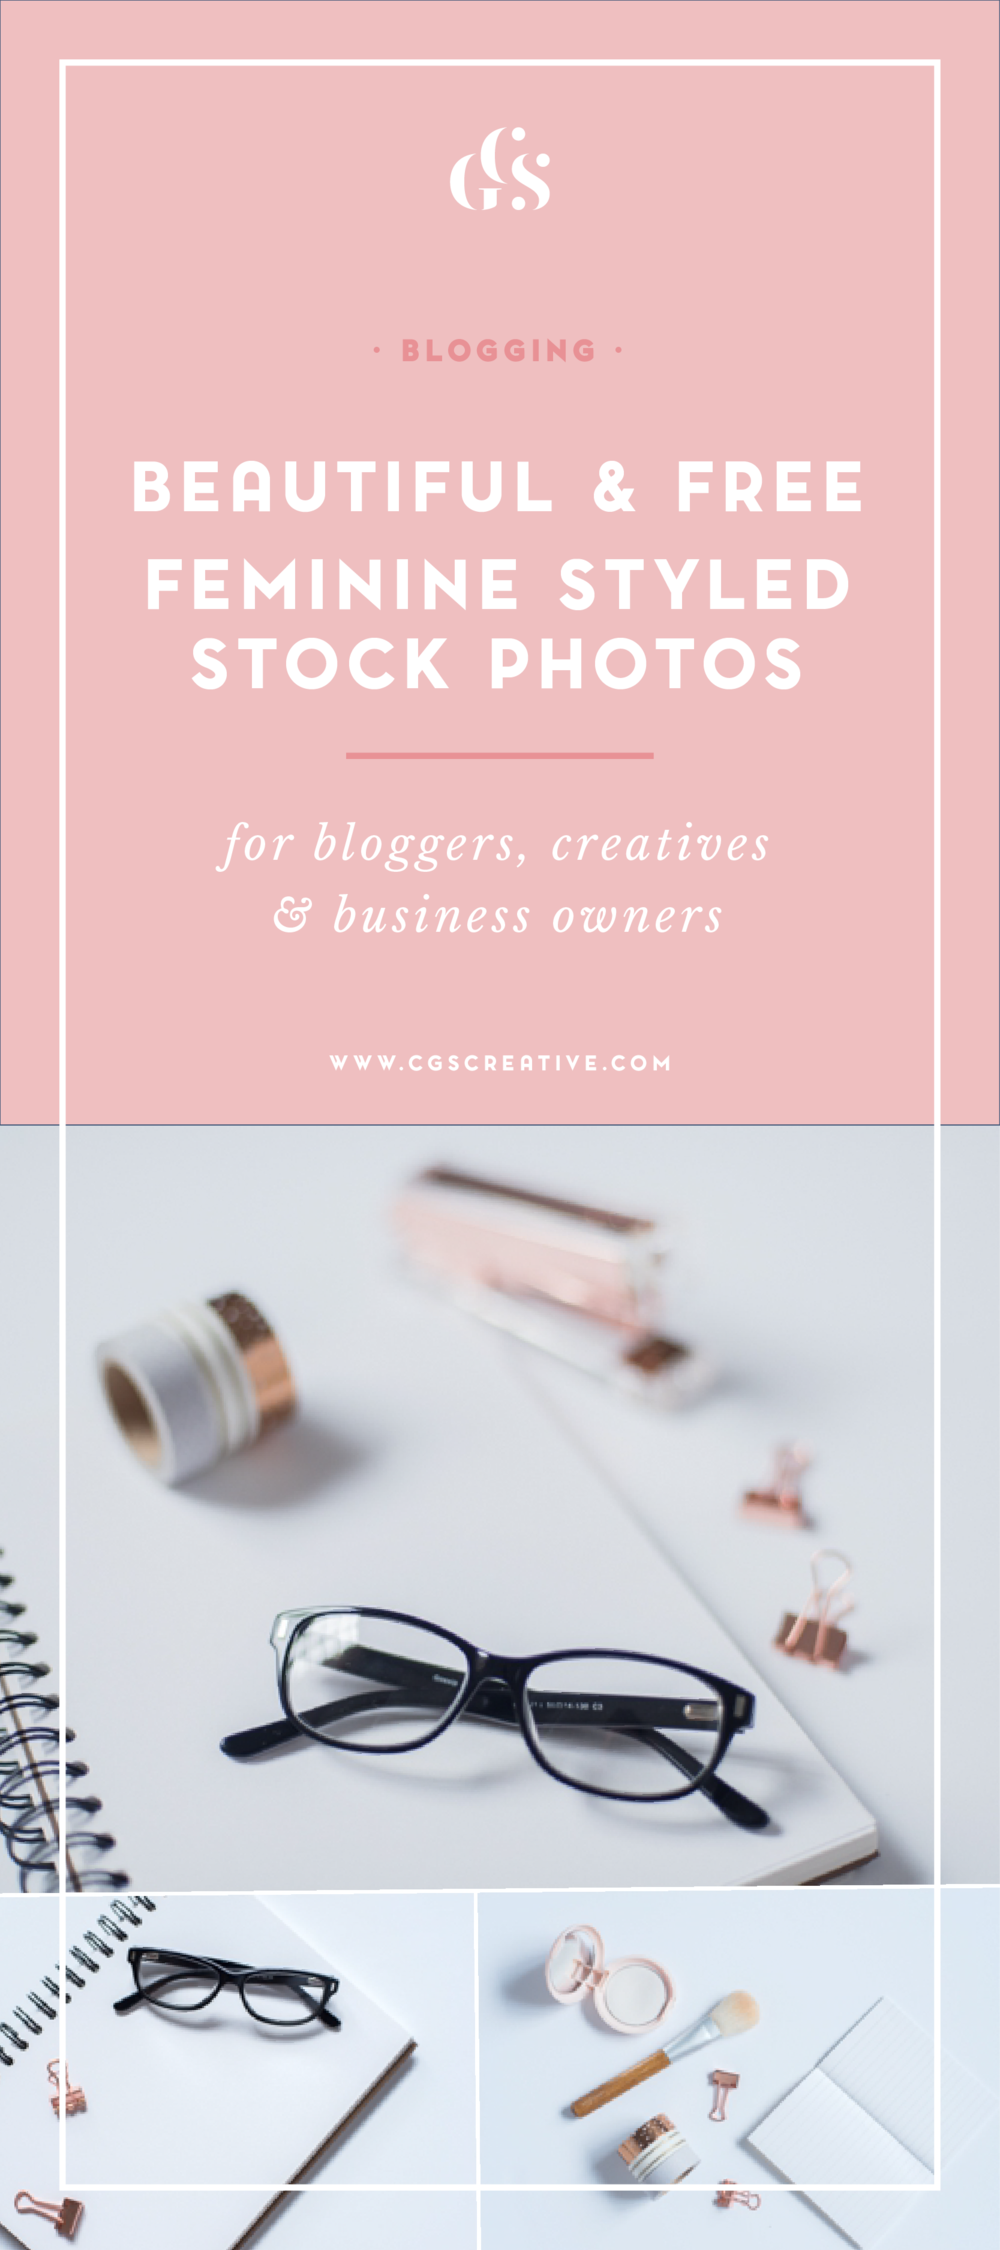 Beautiful & Free Feminine Styled Stock Photos for Bloggers, Creatives & Business Owners